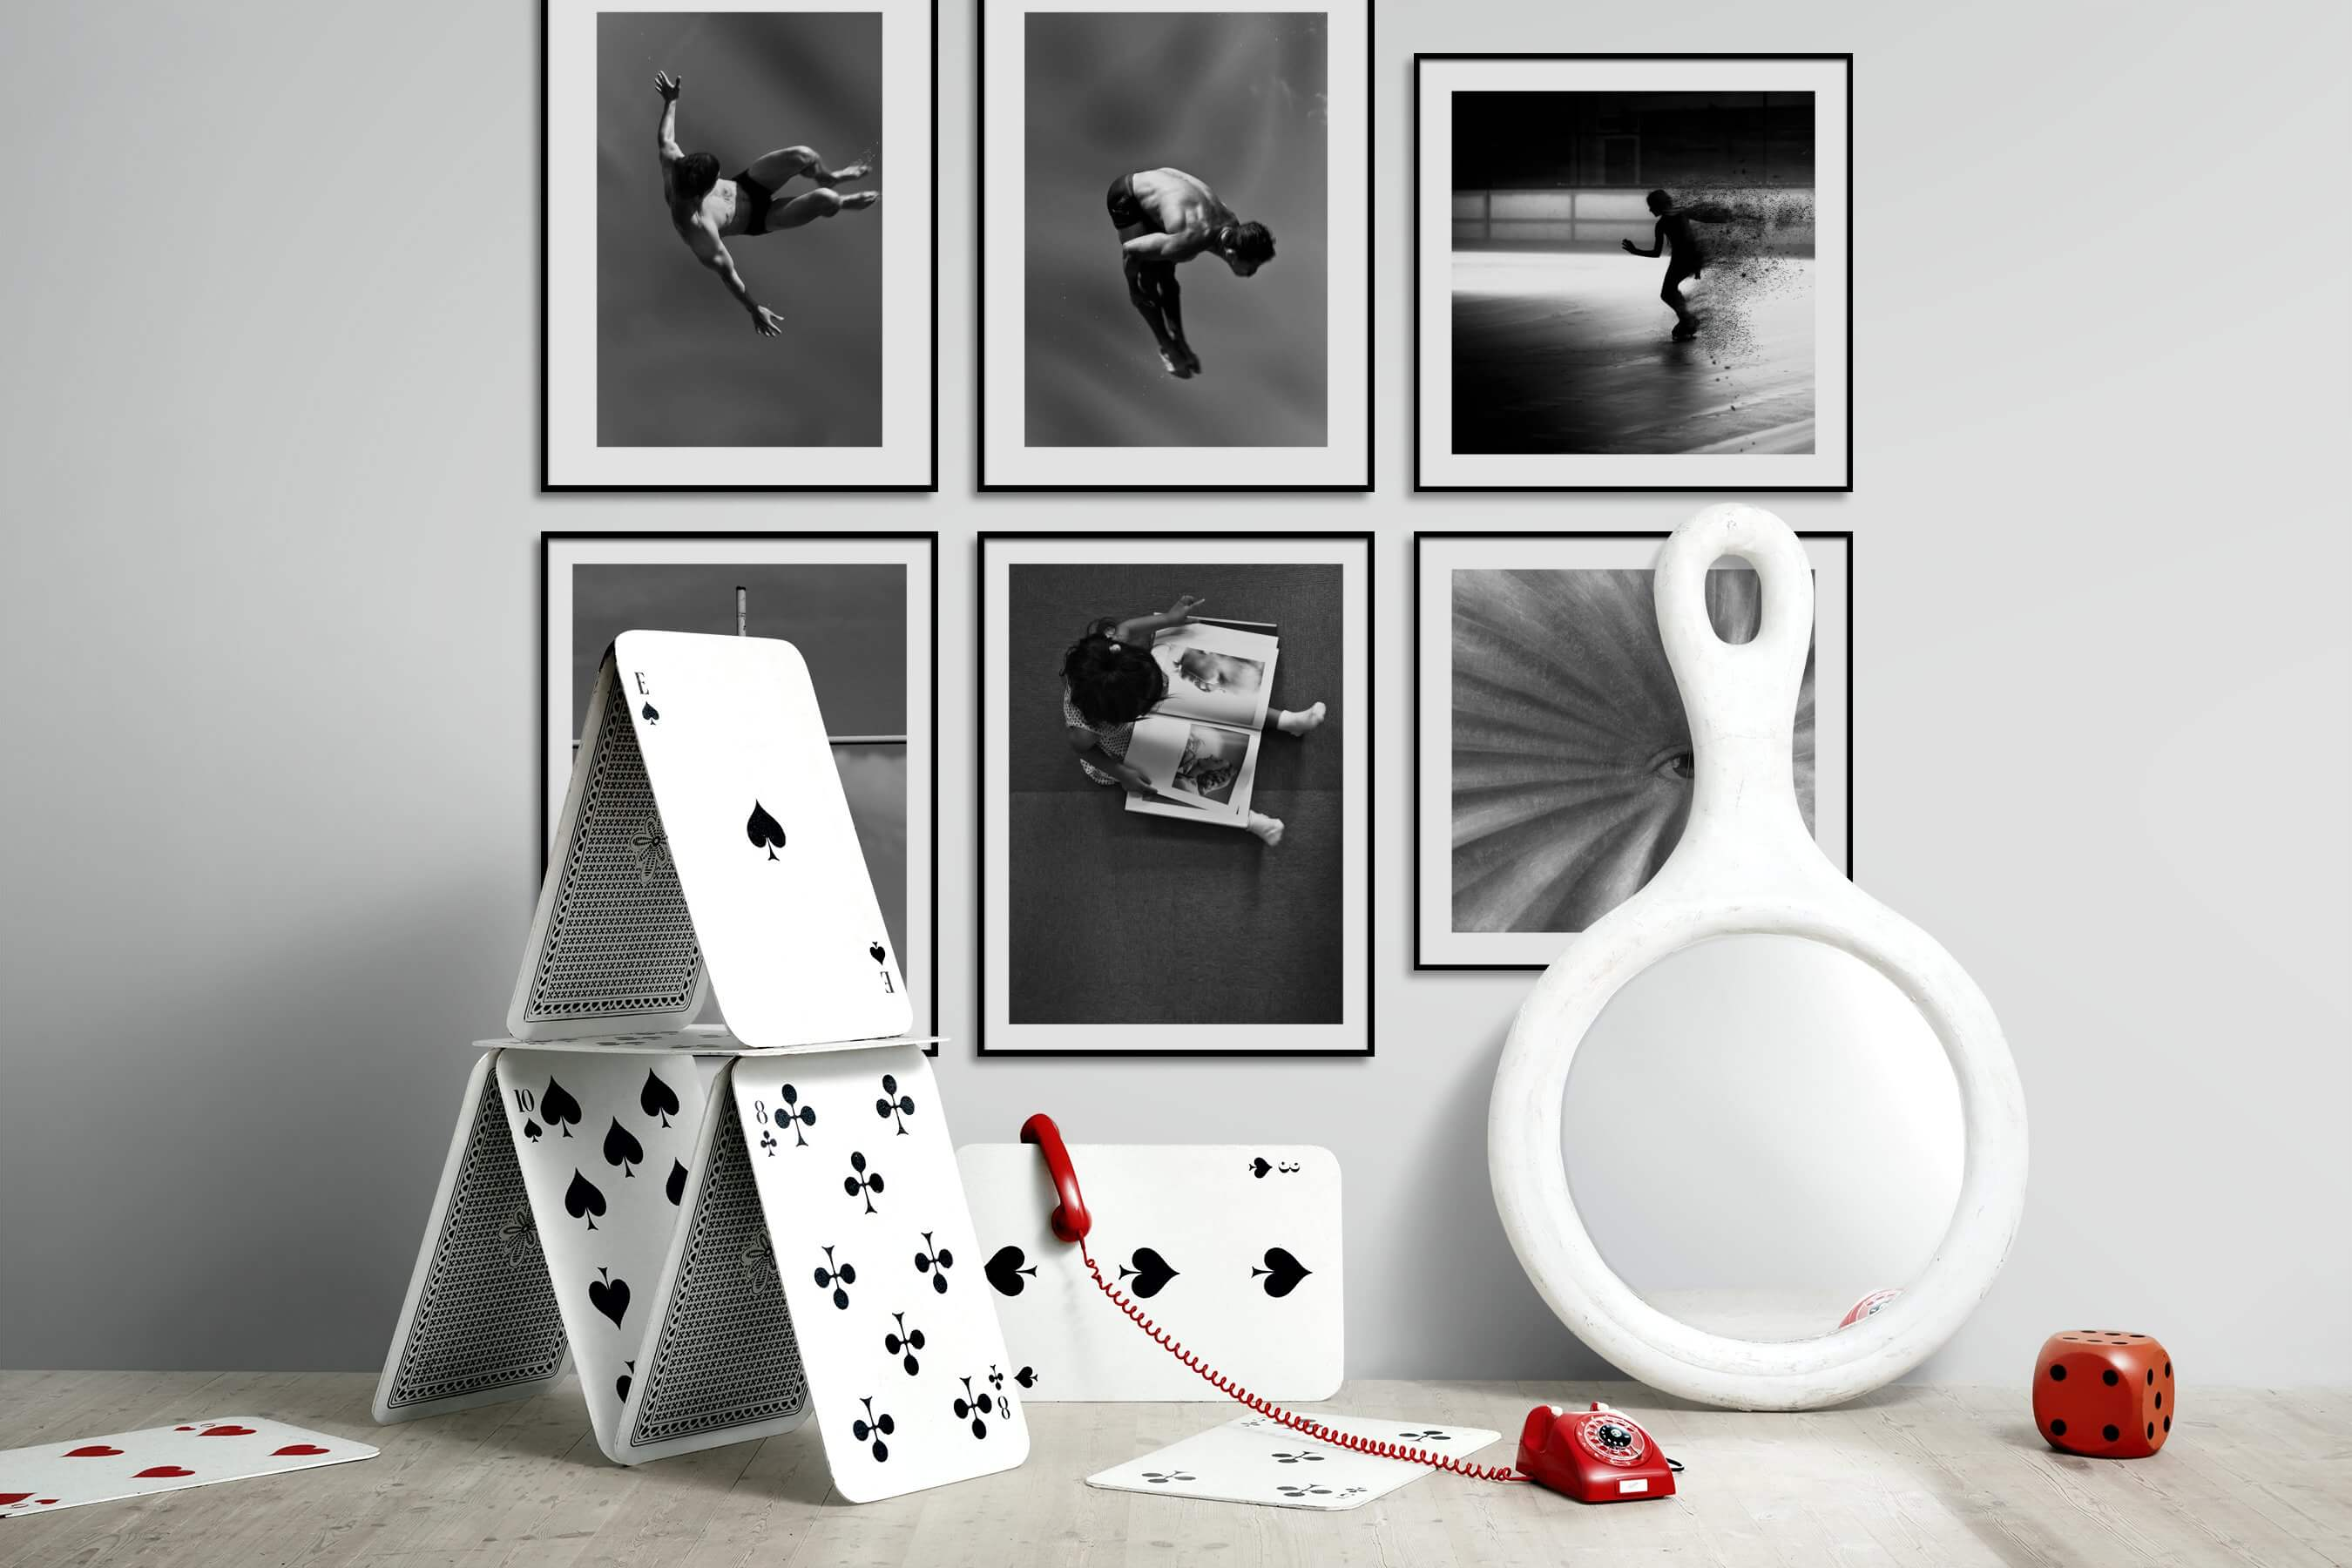 Gallery wall idea with six framed pictures arranged on a wall depicting Fashion & Beauty, Black & White, Artsy, and For the Moderate